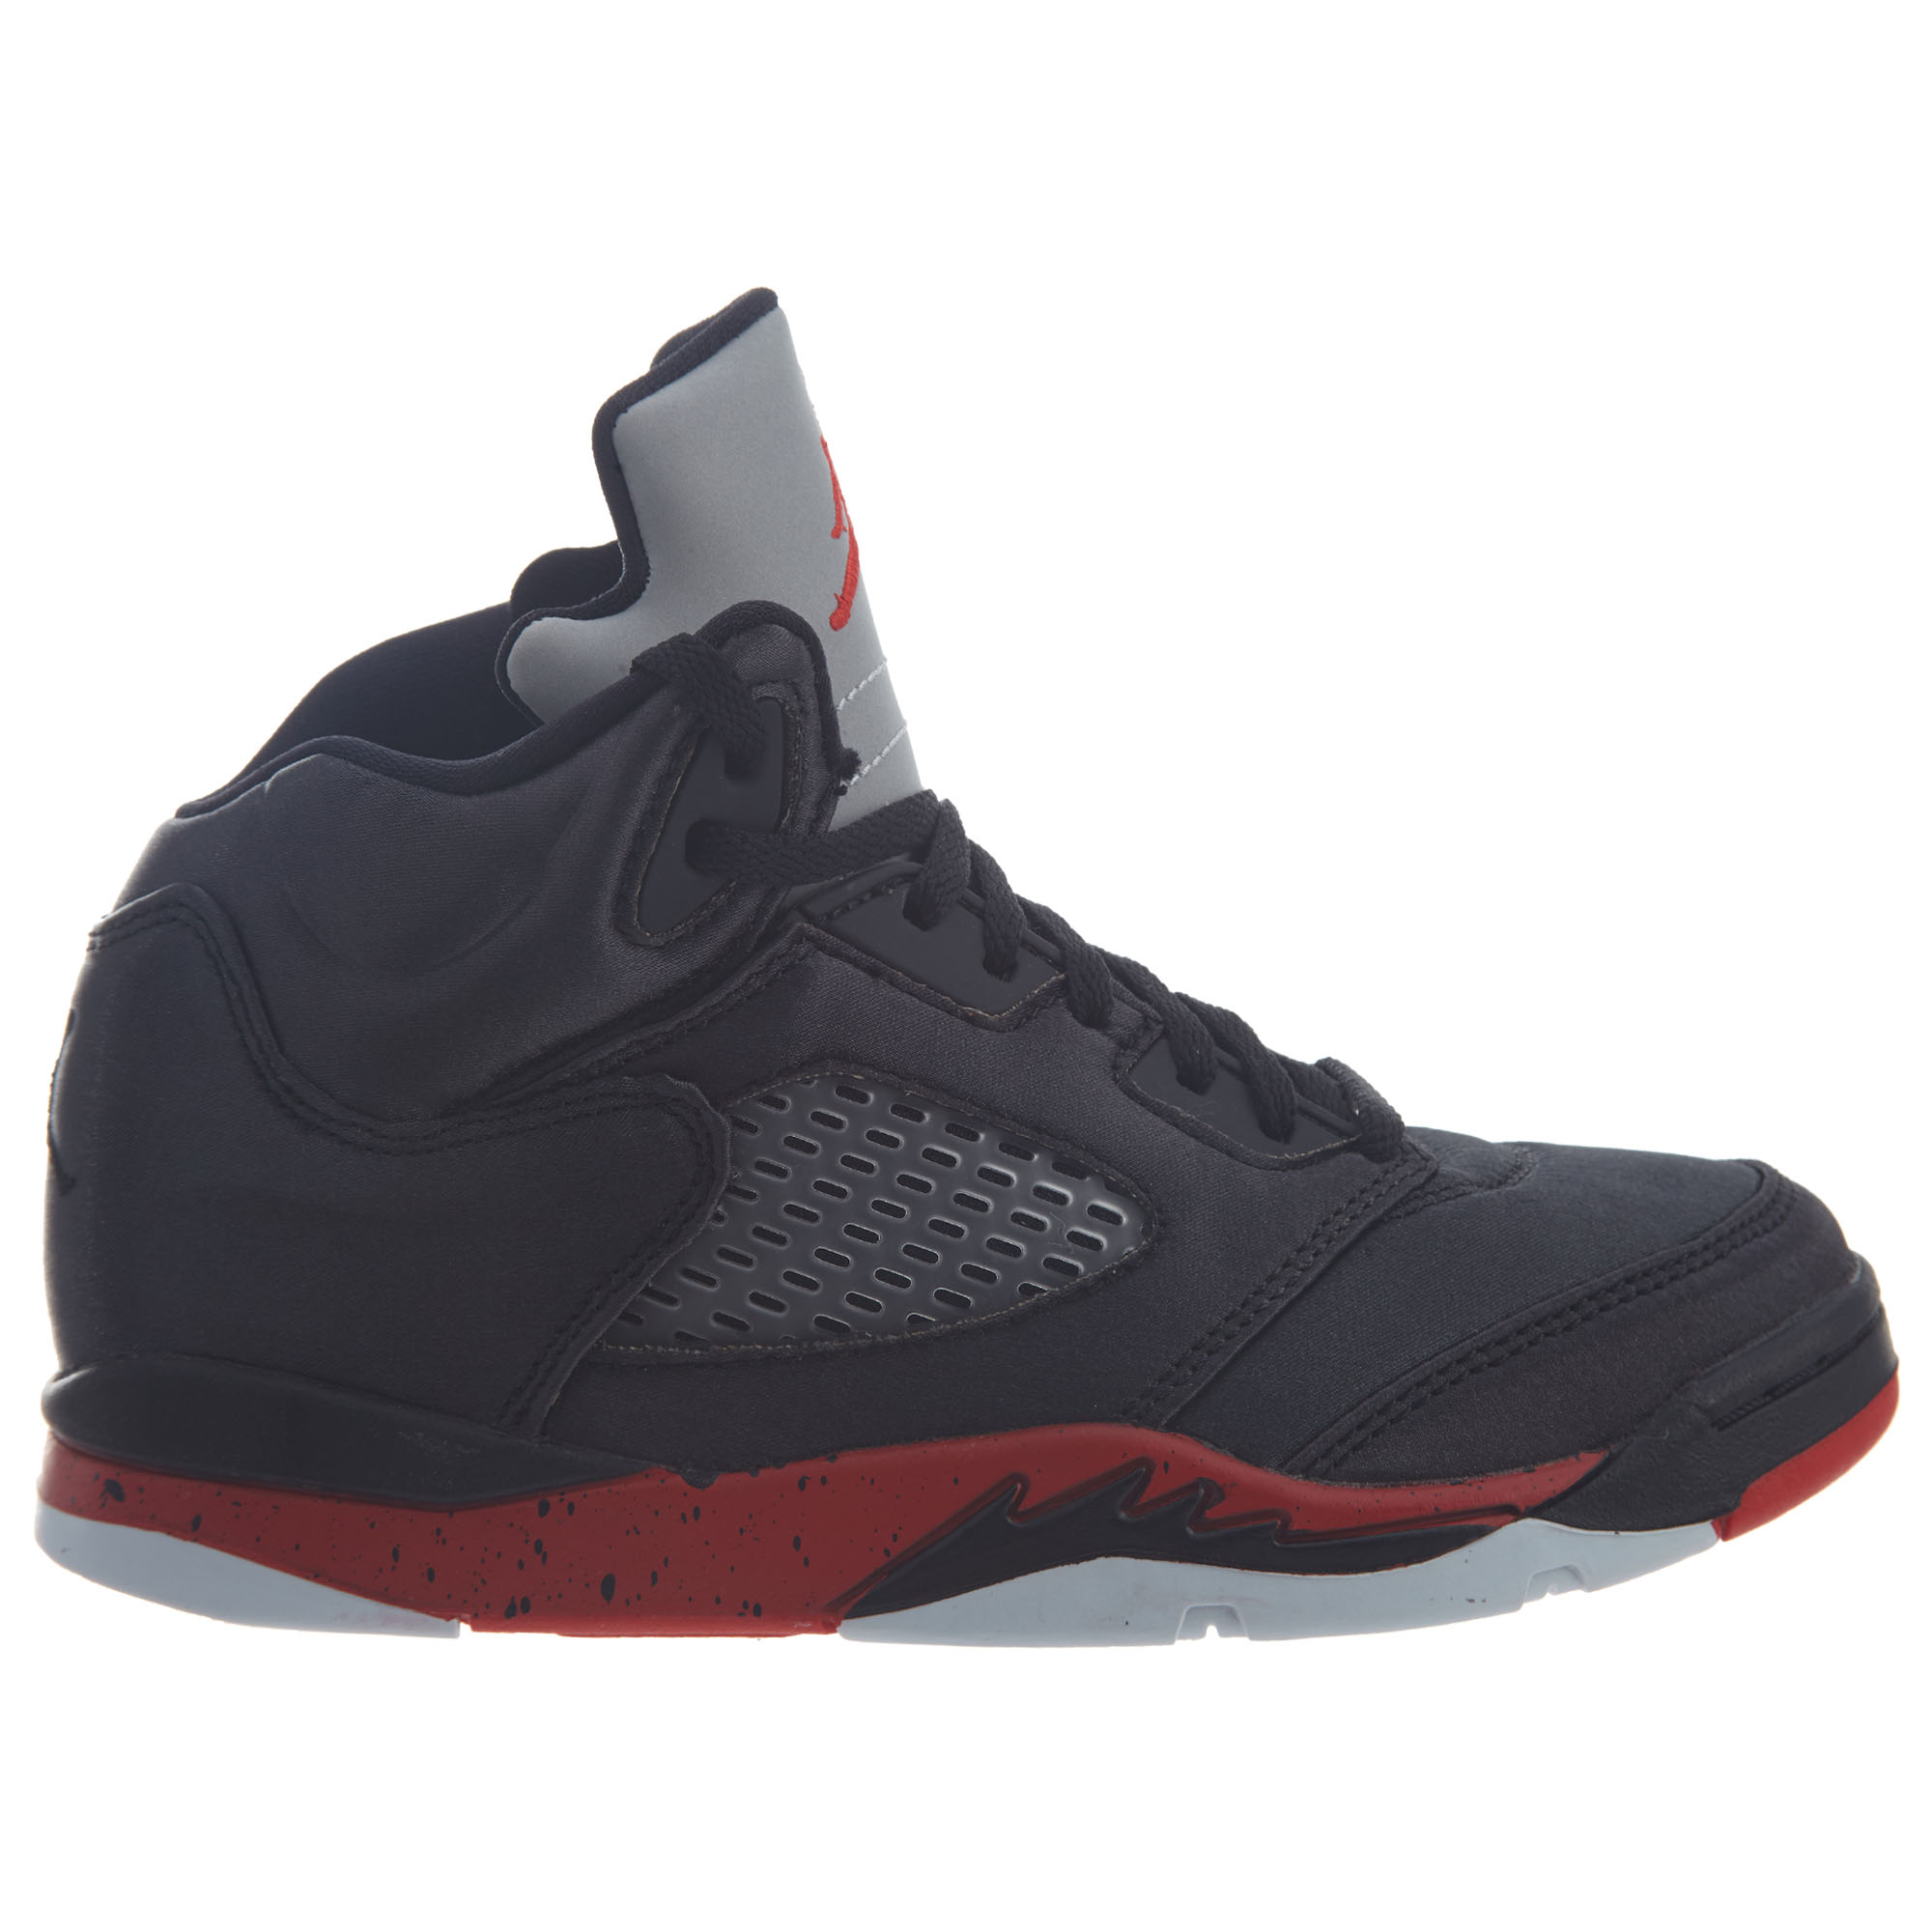 buy online f7d89 acee5 Jordan Little Kids 5 Retro Basketball Shoes